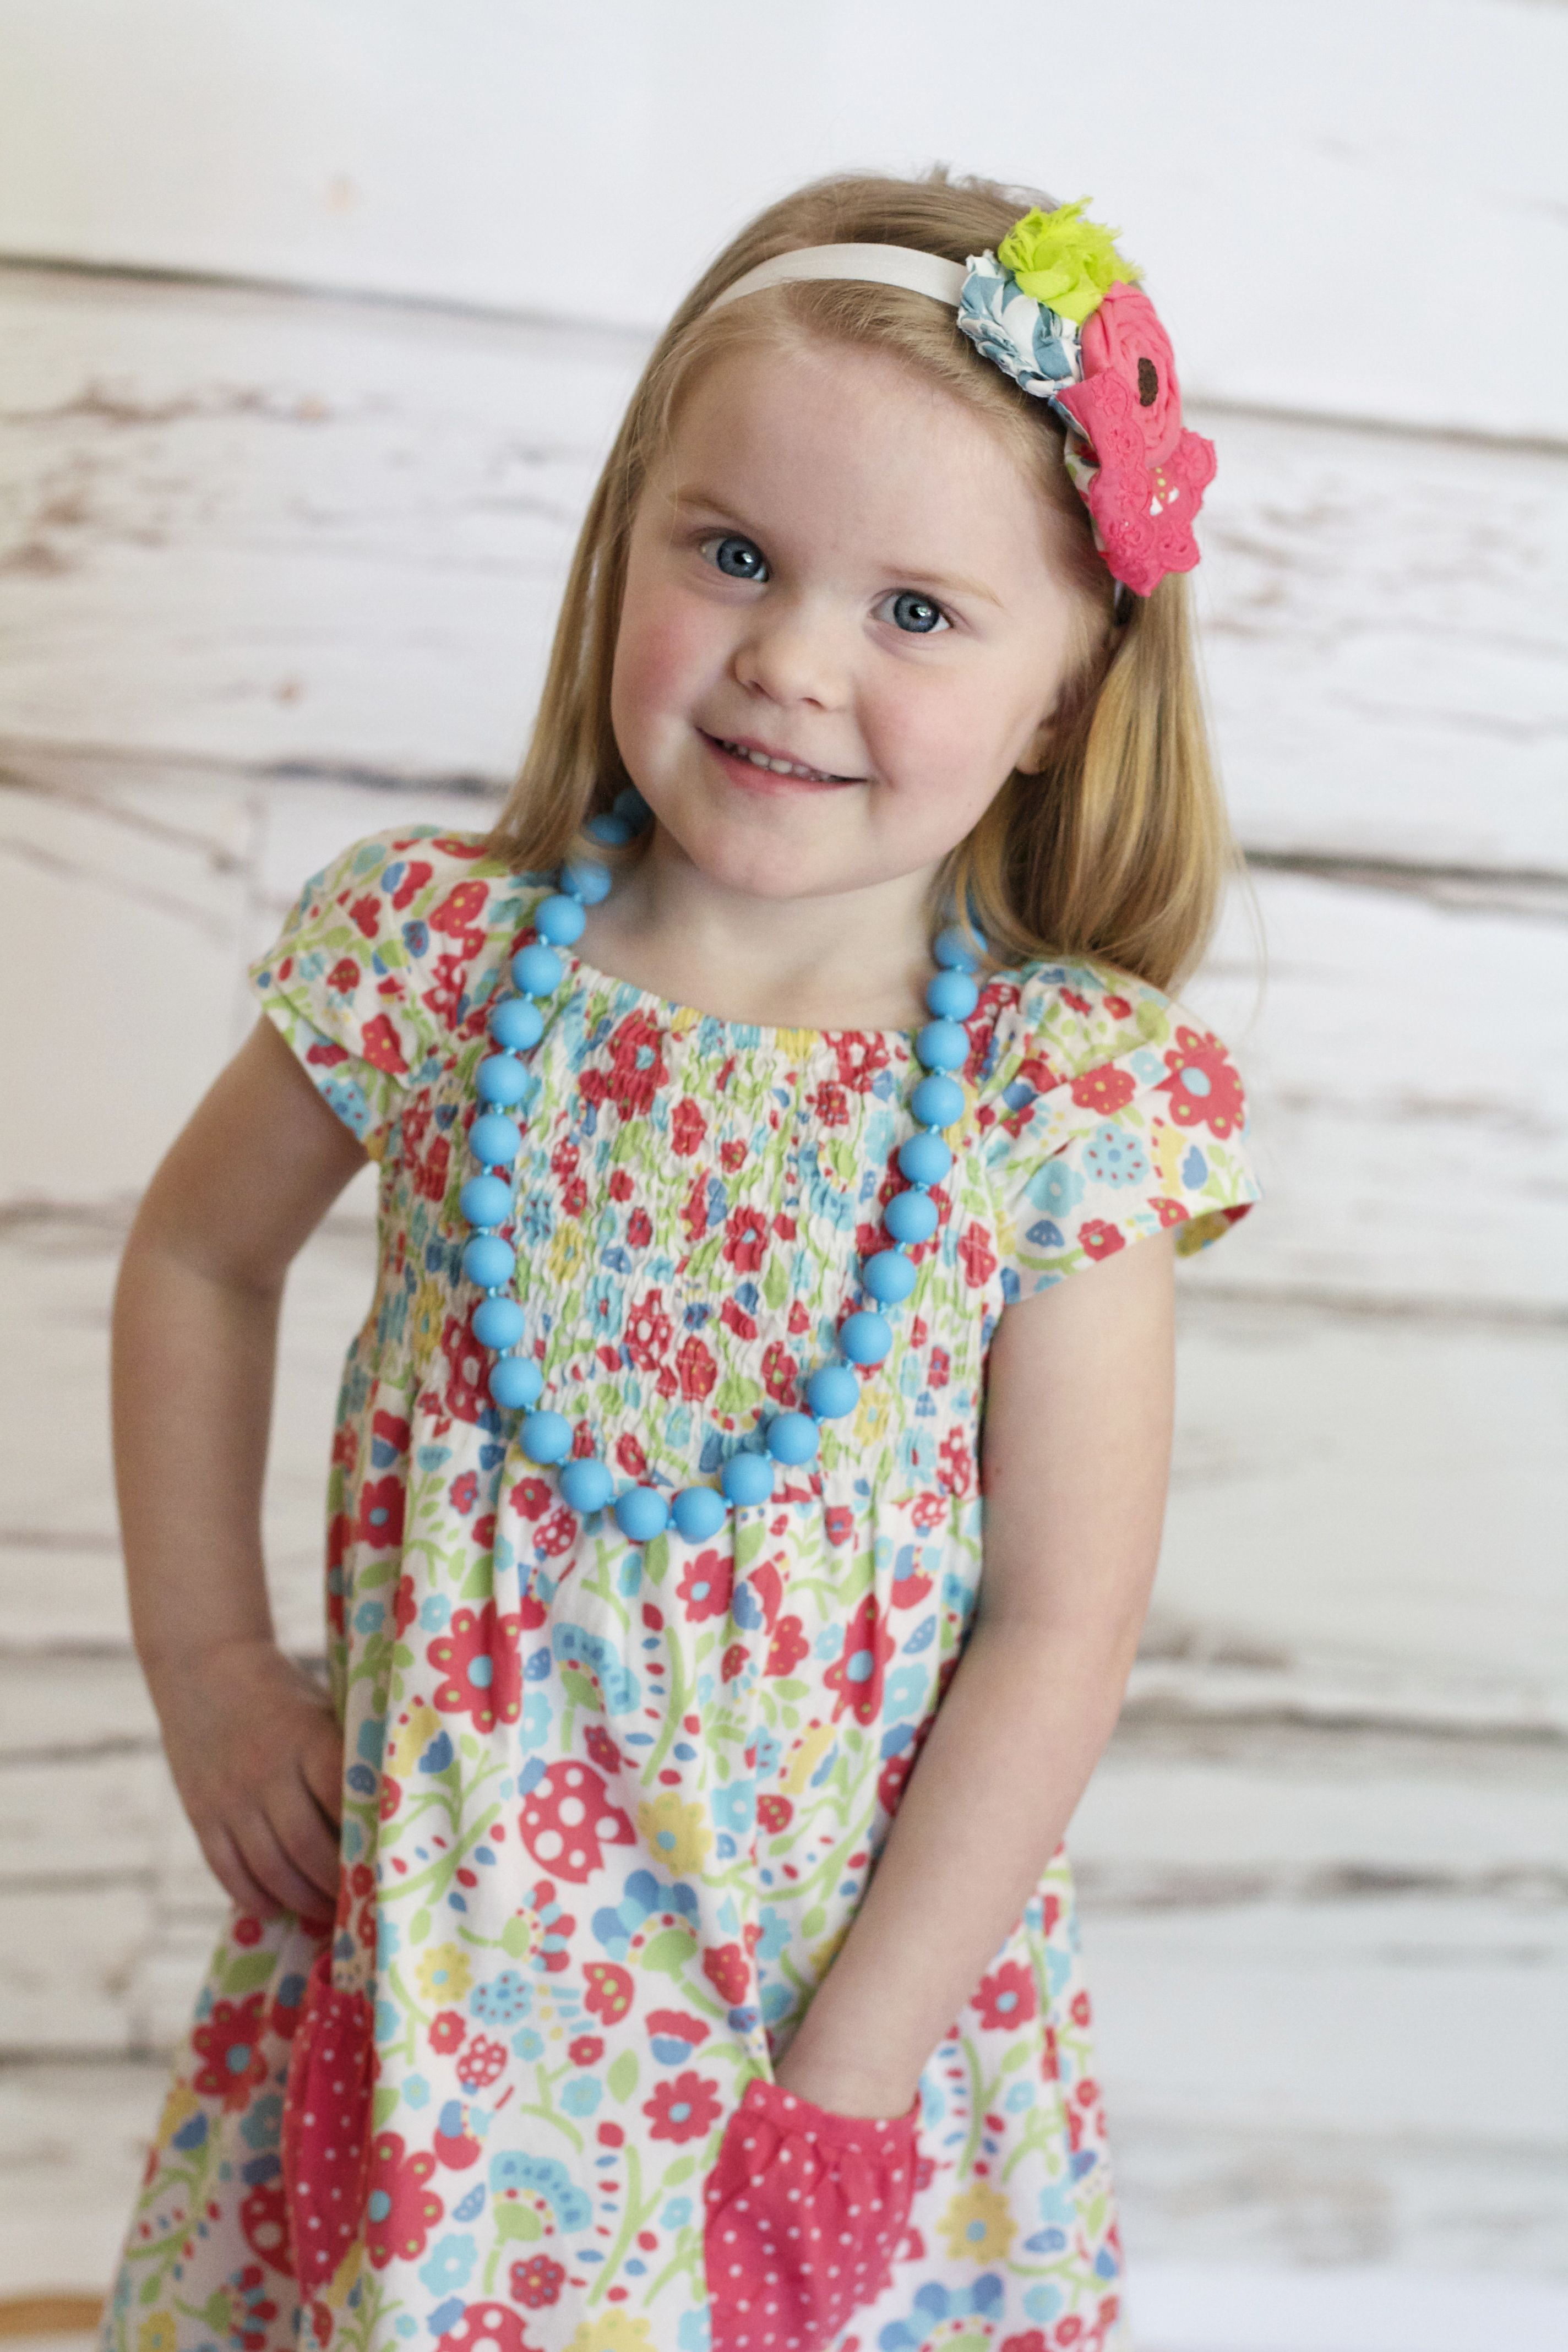 Clearance childrens clothing childens clothing sale baby clothing sale